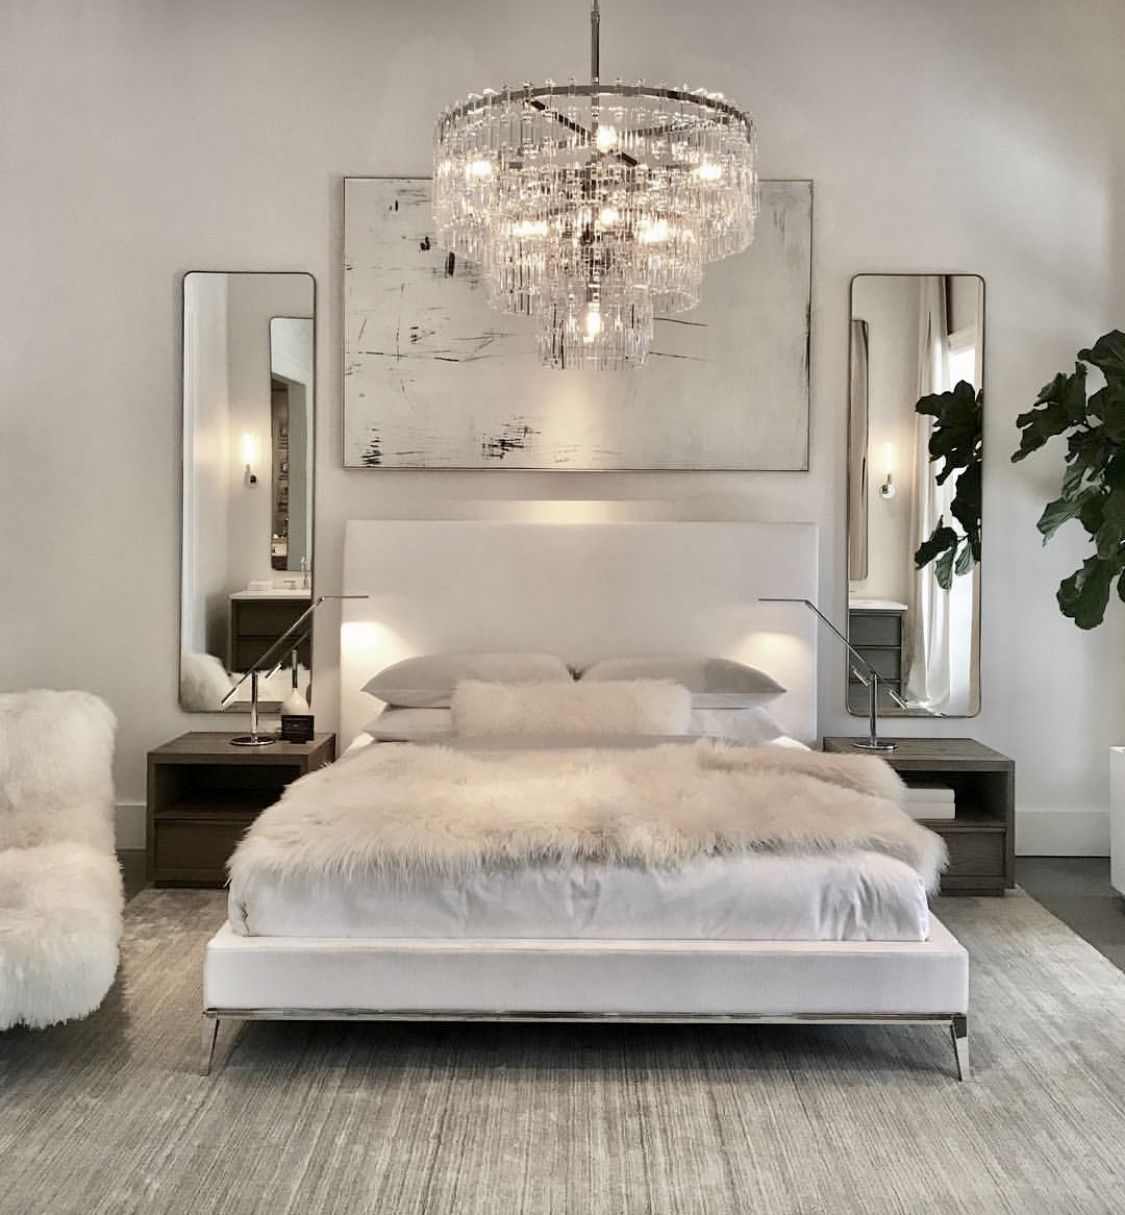 Makeup And Age White Bedroom Decor Elegant Bedroom Luxurious